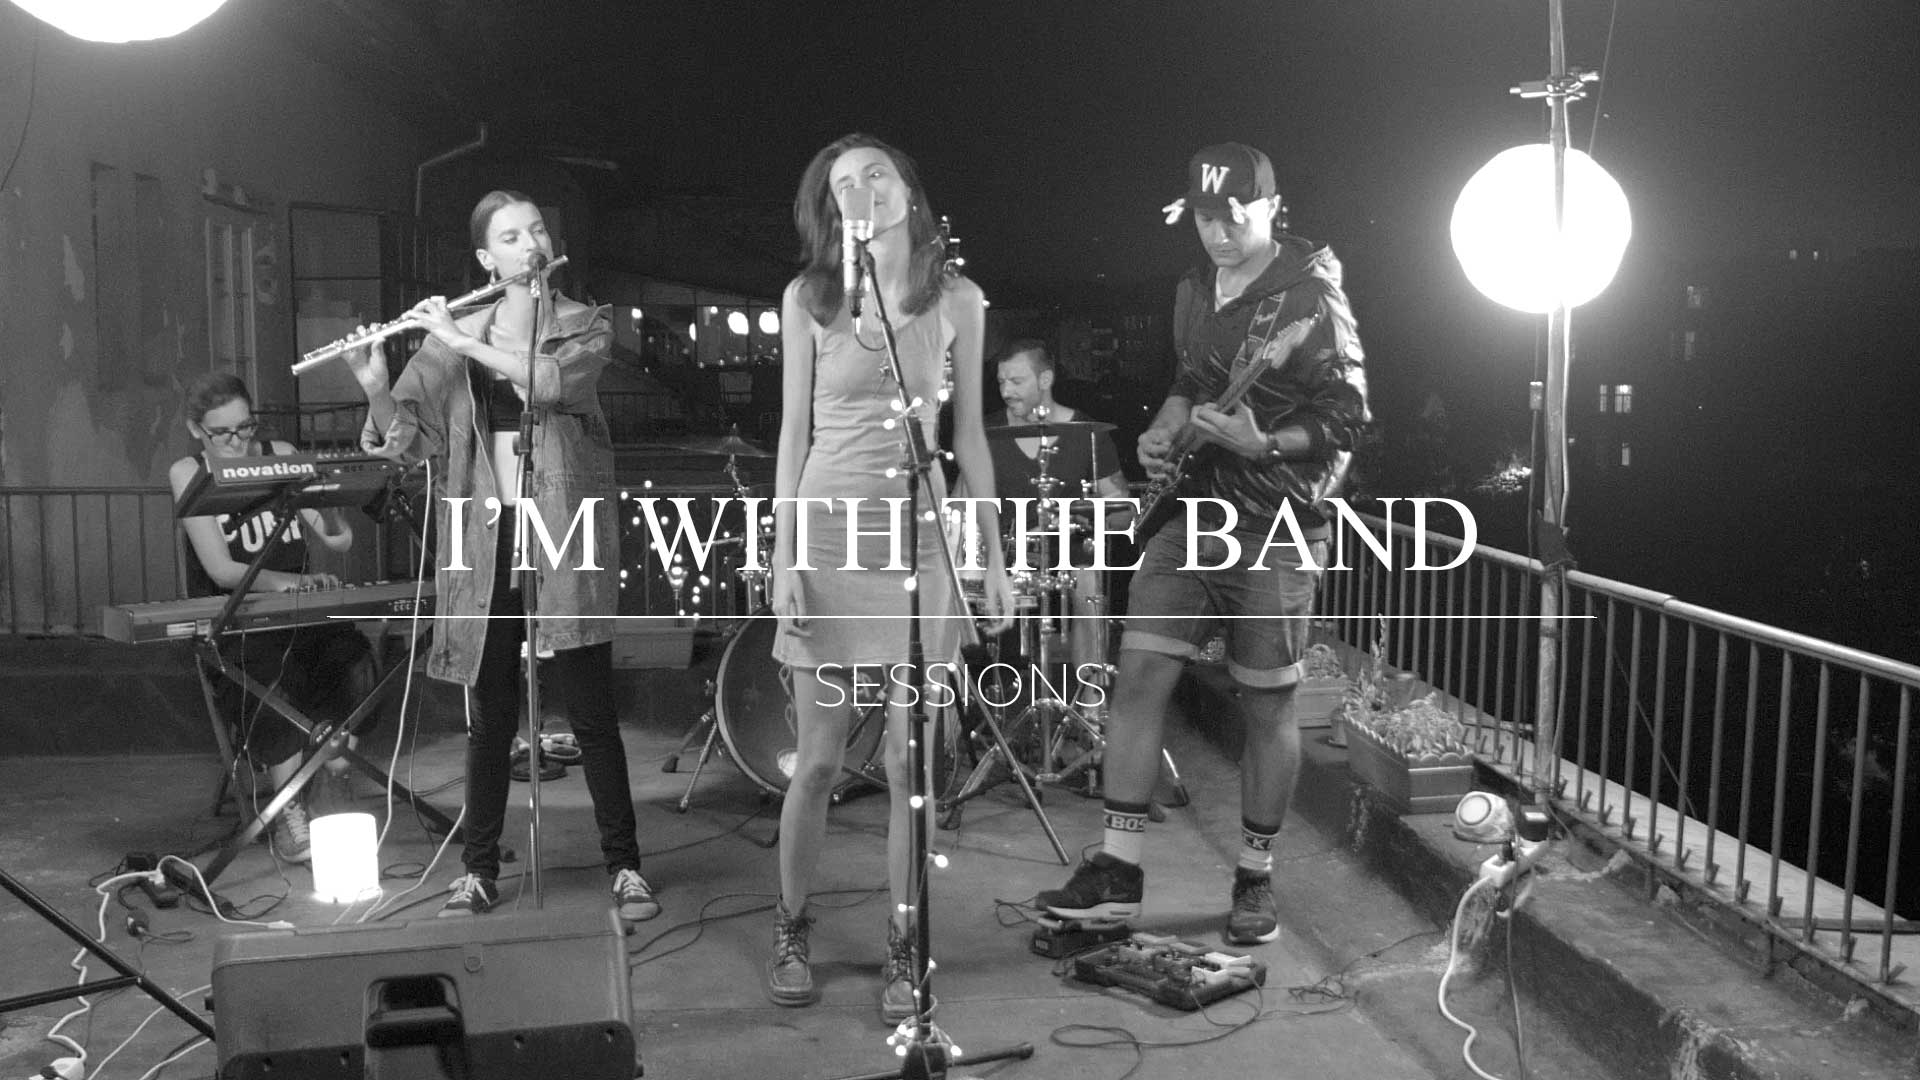 I'M WITH THE BAND SESSIONS 05: Paraplanner